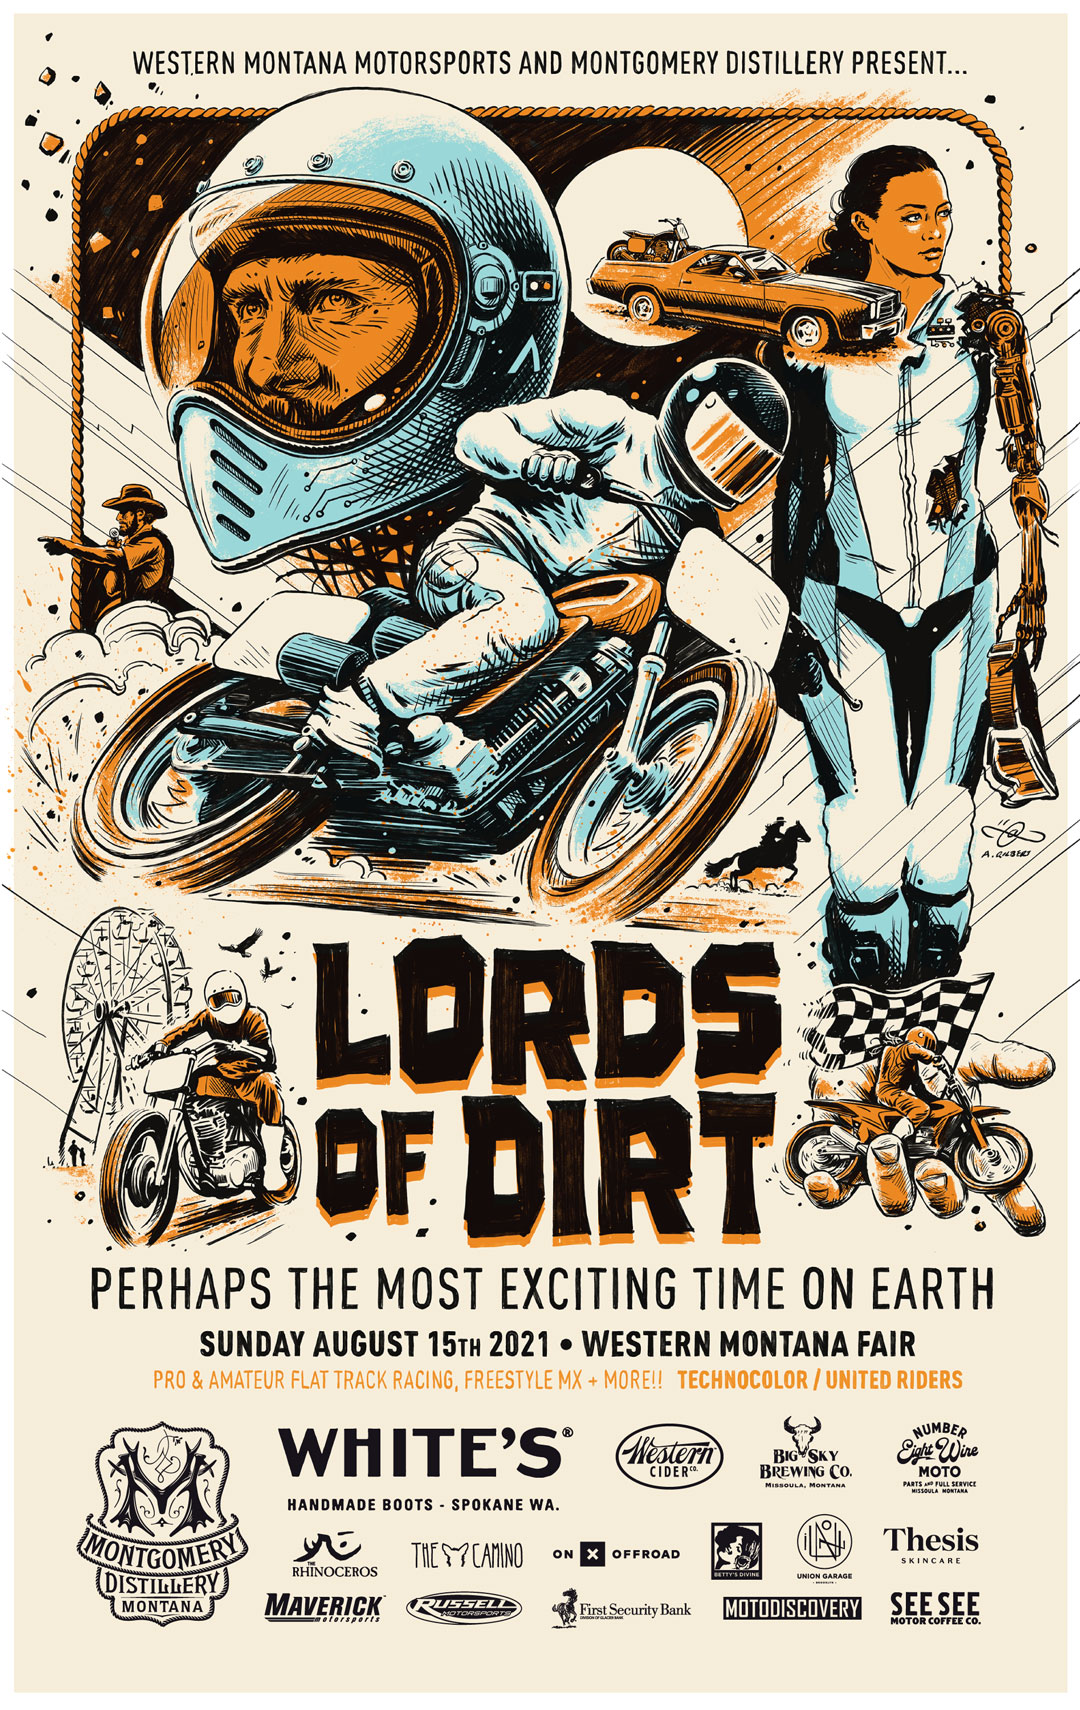 Lords Of Dirt Flat Track Race Poster 2021